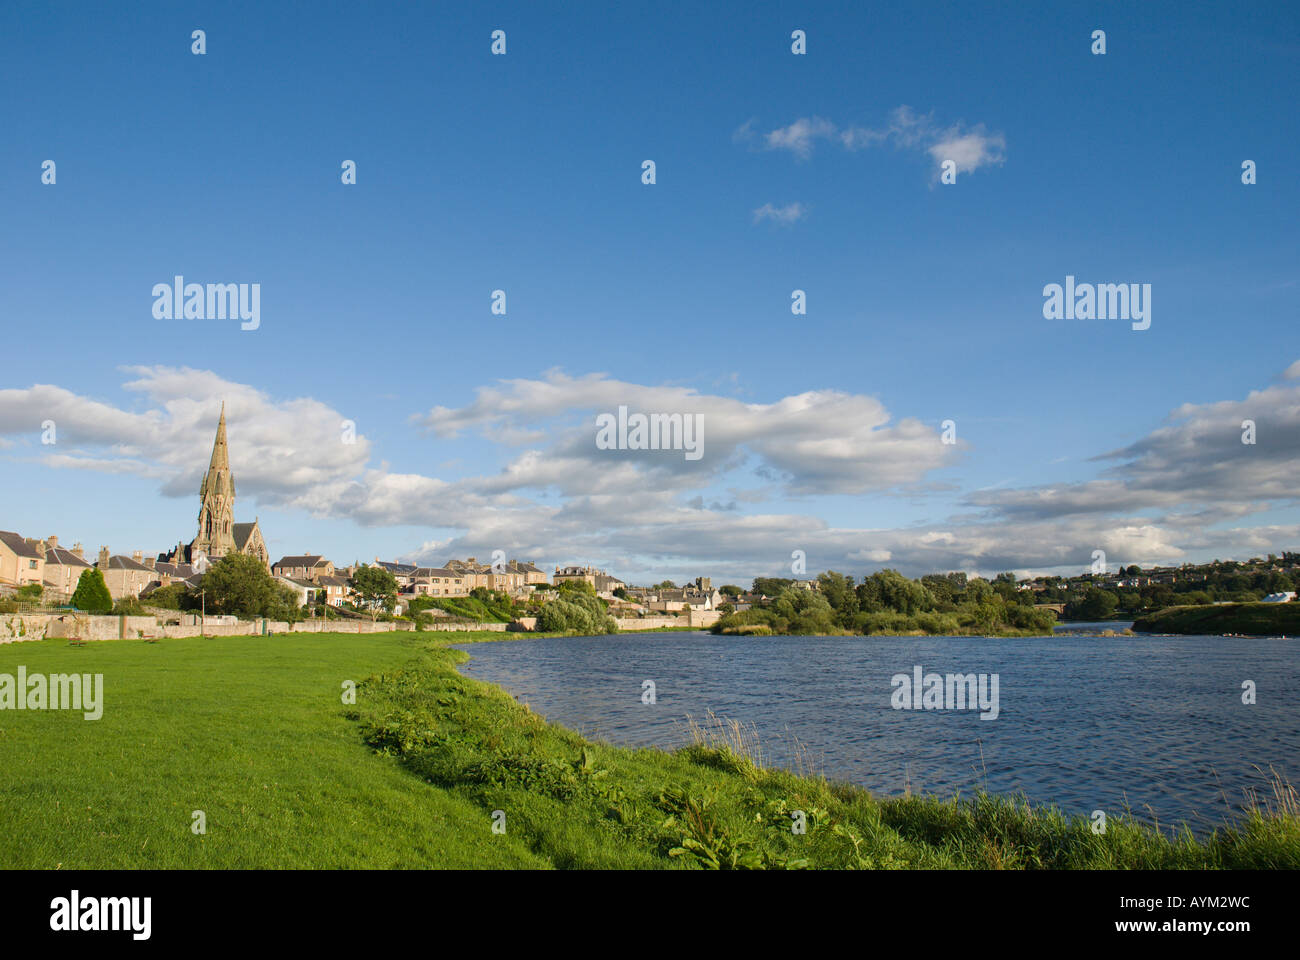 River Tweed Kelso Scottish Borders UK view of town with churches mill and abbey from the Cobby - Stock Image